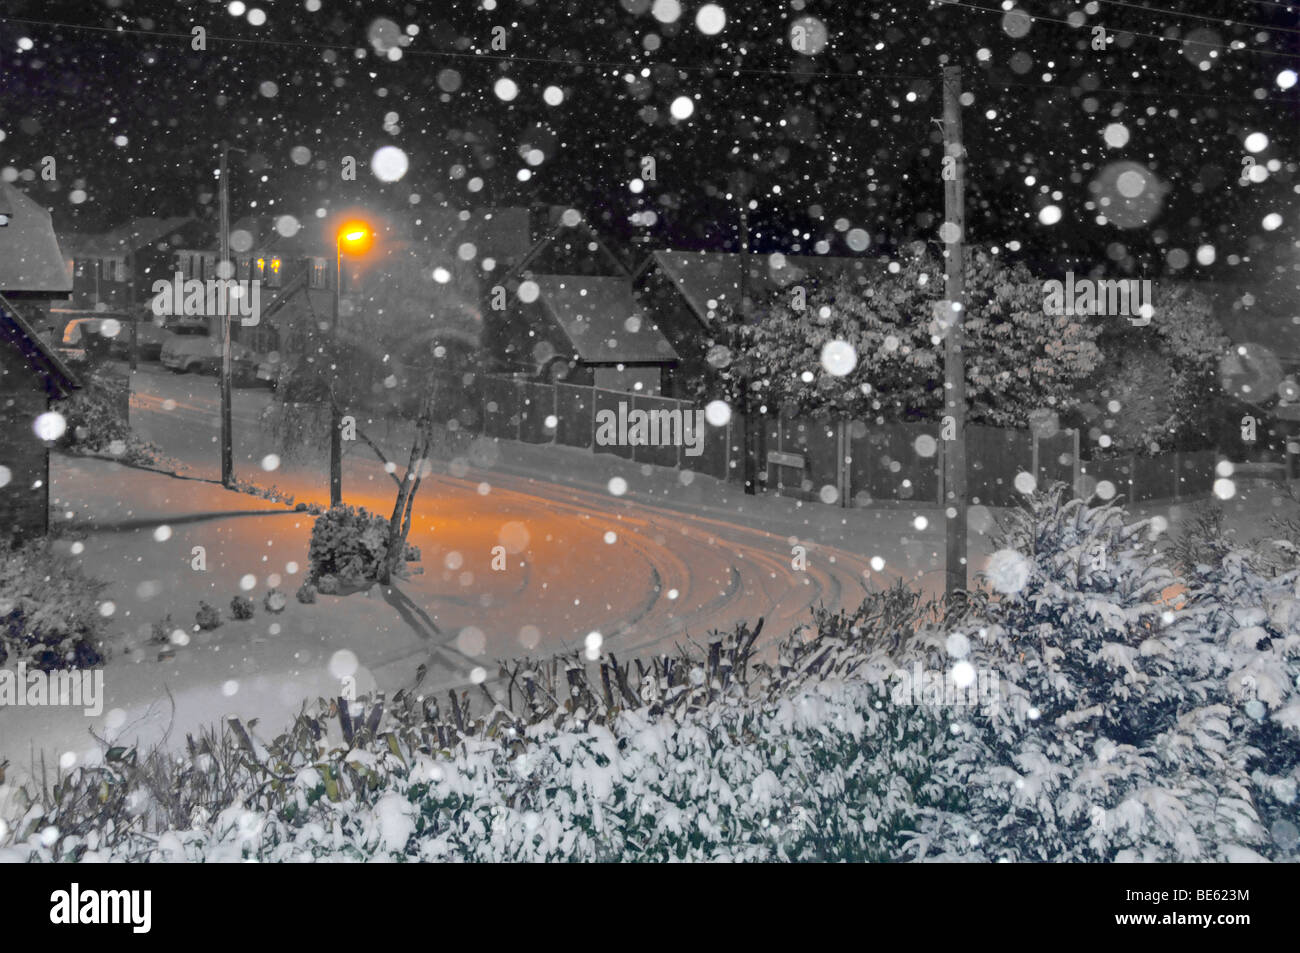 Snow flakes by flash with orange lighting illuminating snow covered street landscape manipulated Stock Photo